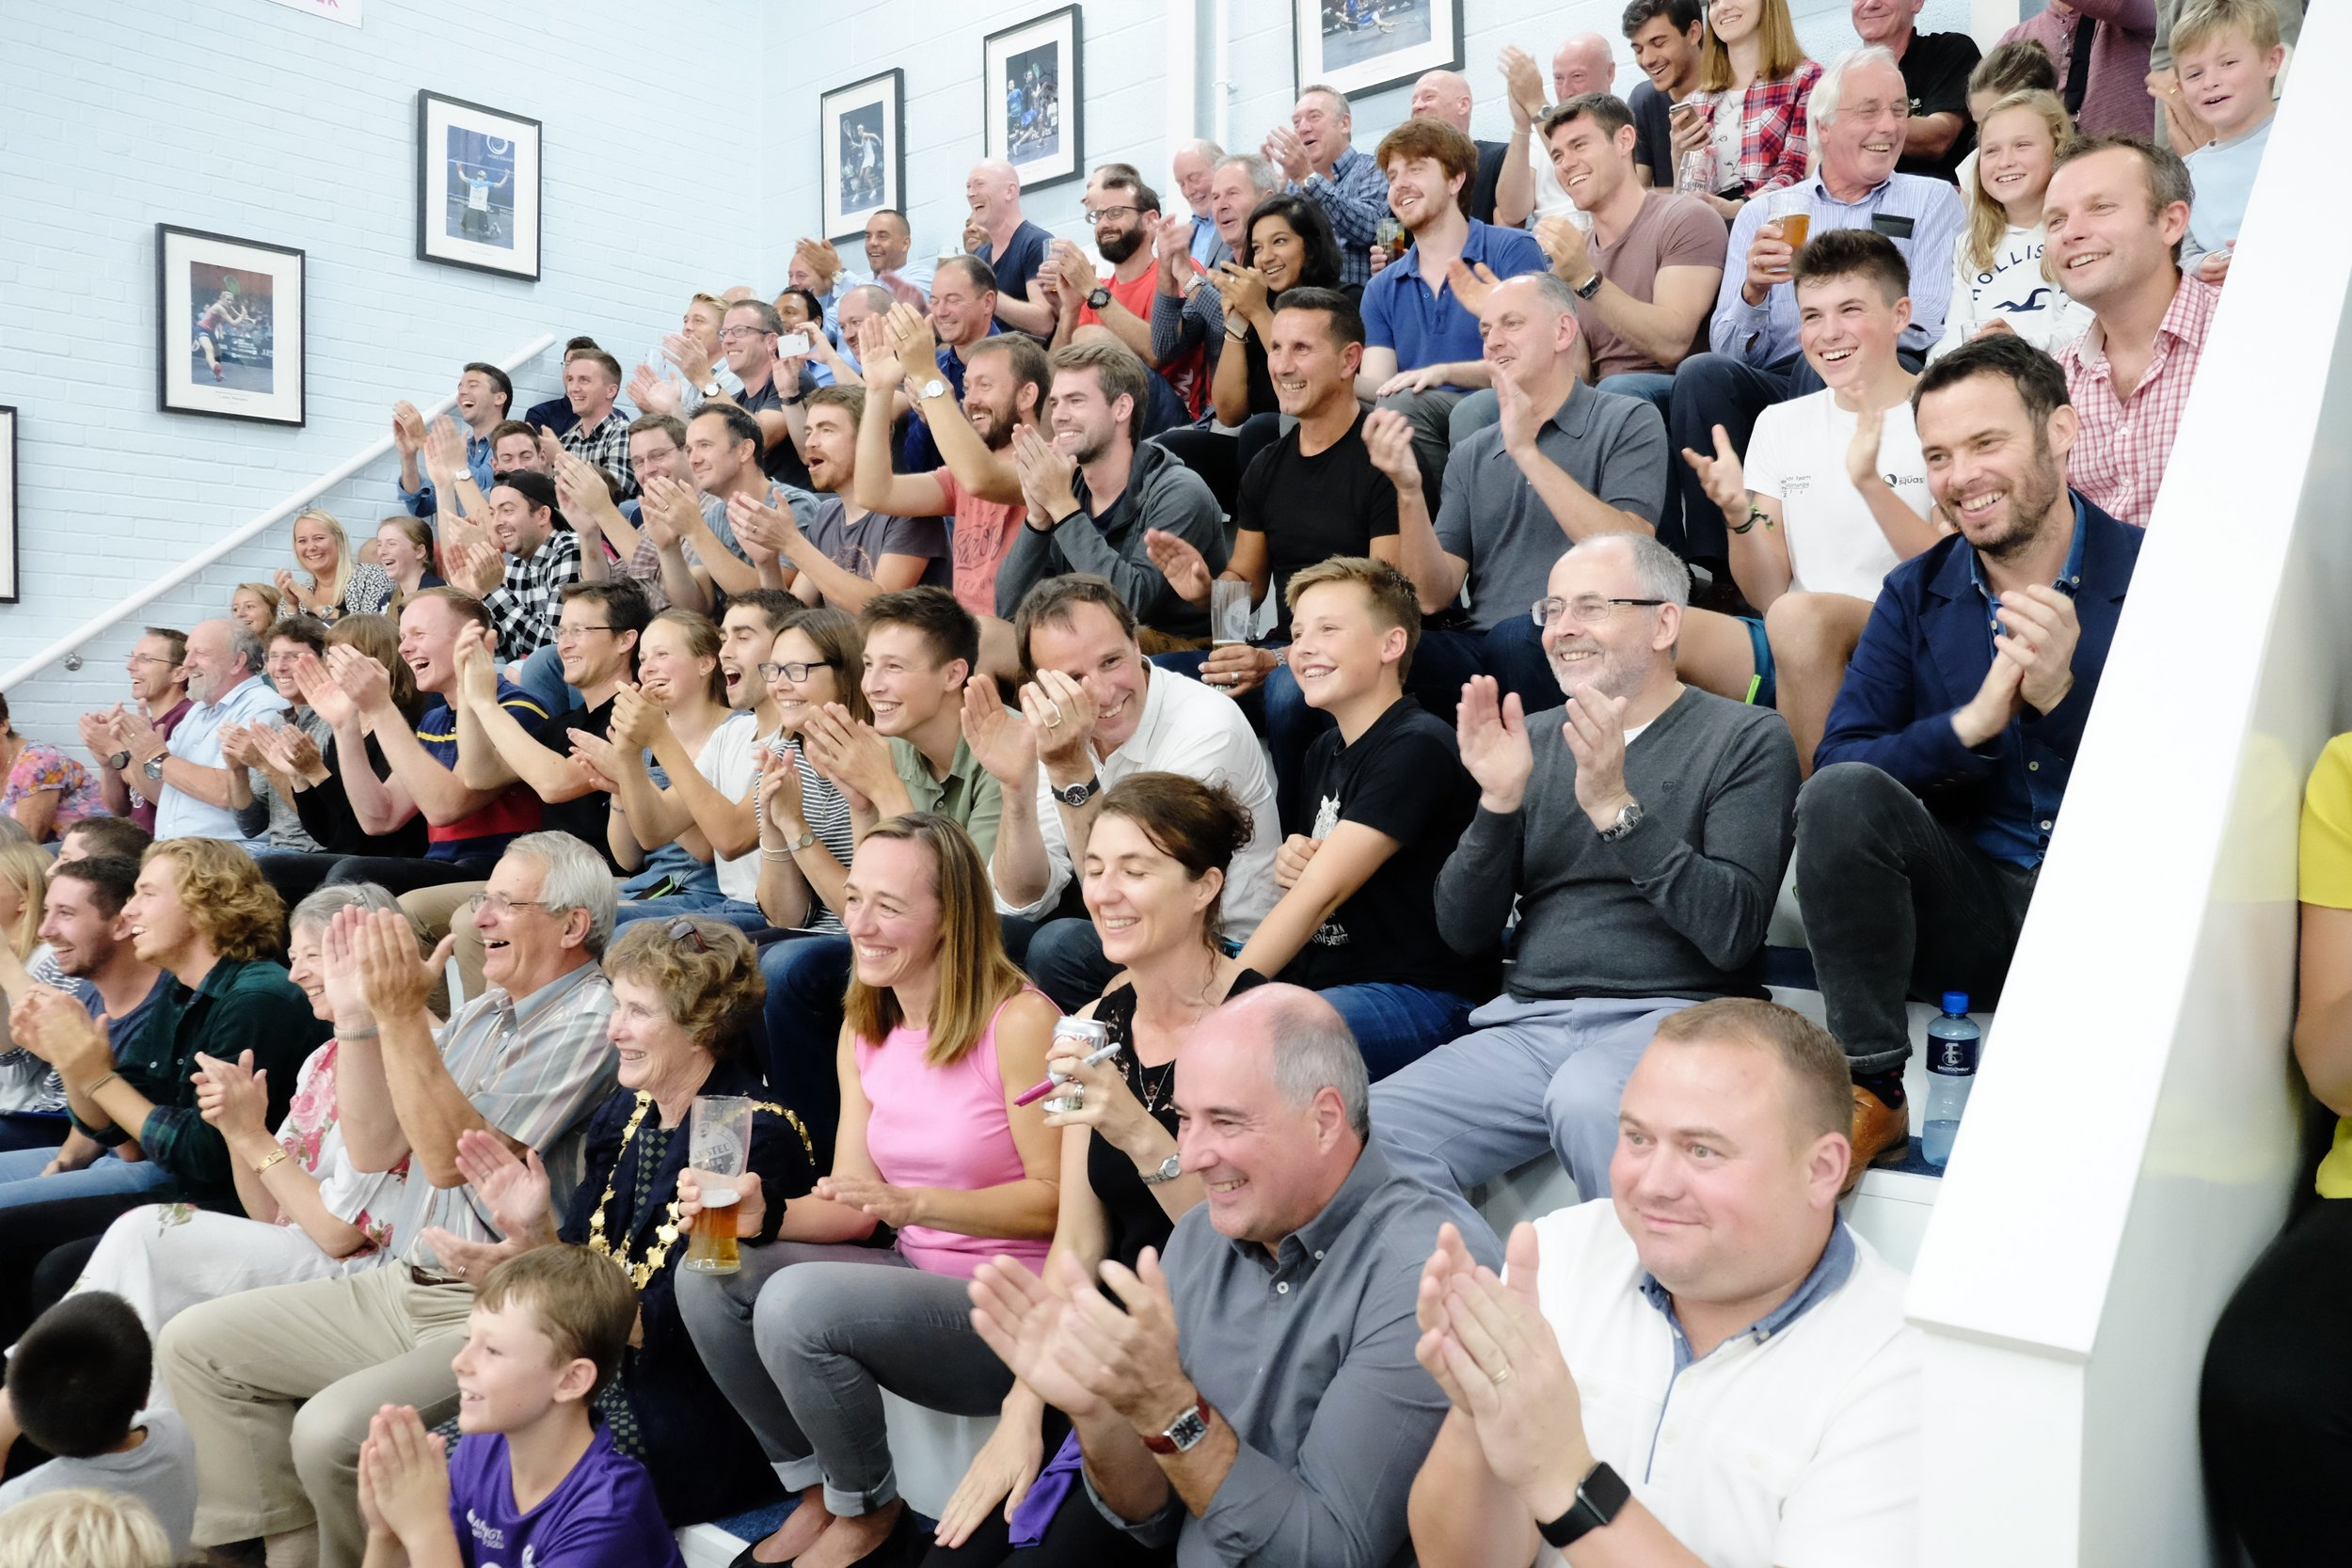 Leamington Spa Event photographer - sports event photography squash crowd scene warwickshire.JPG